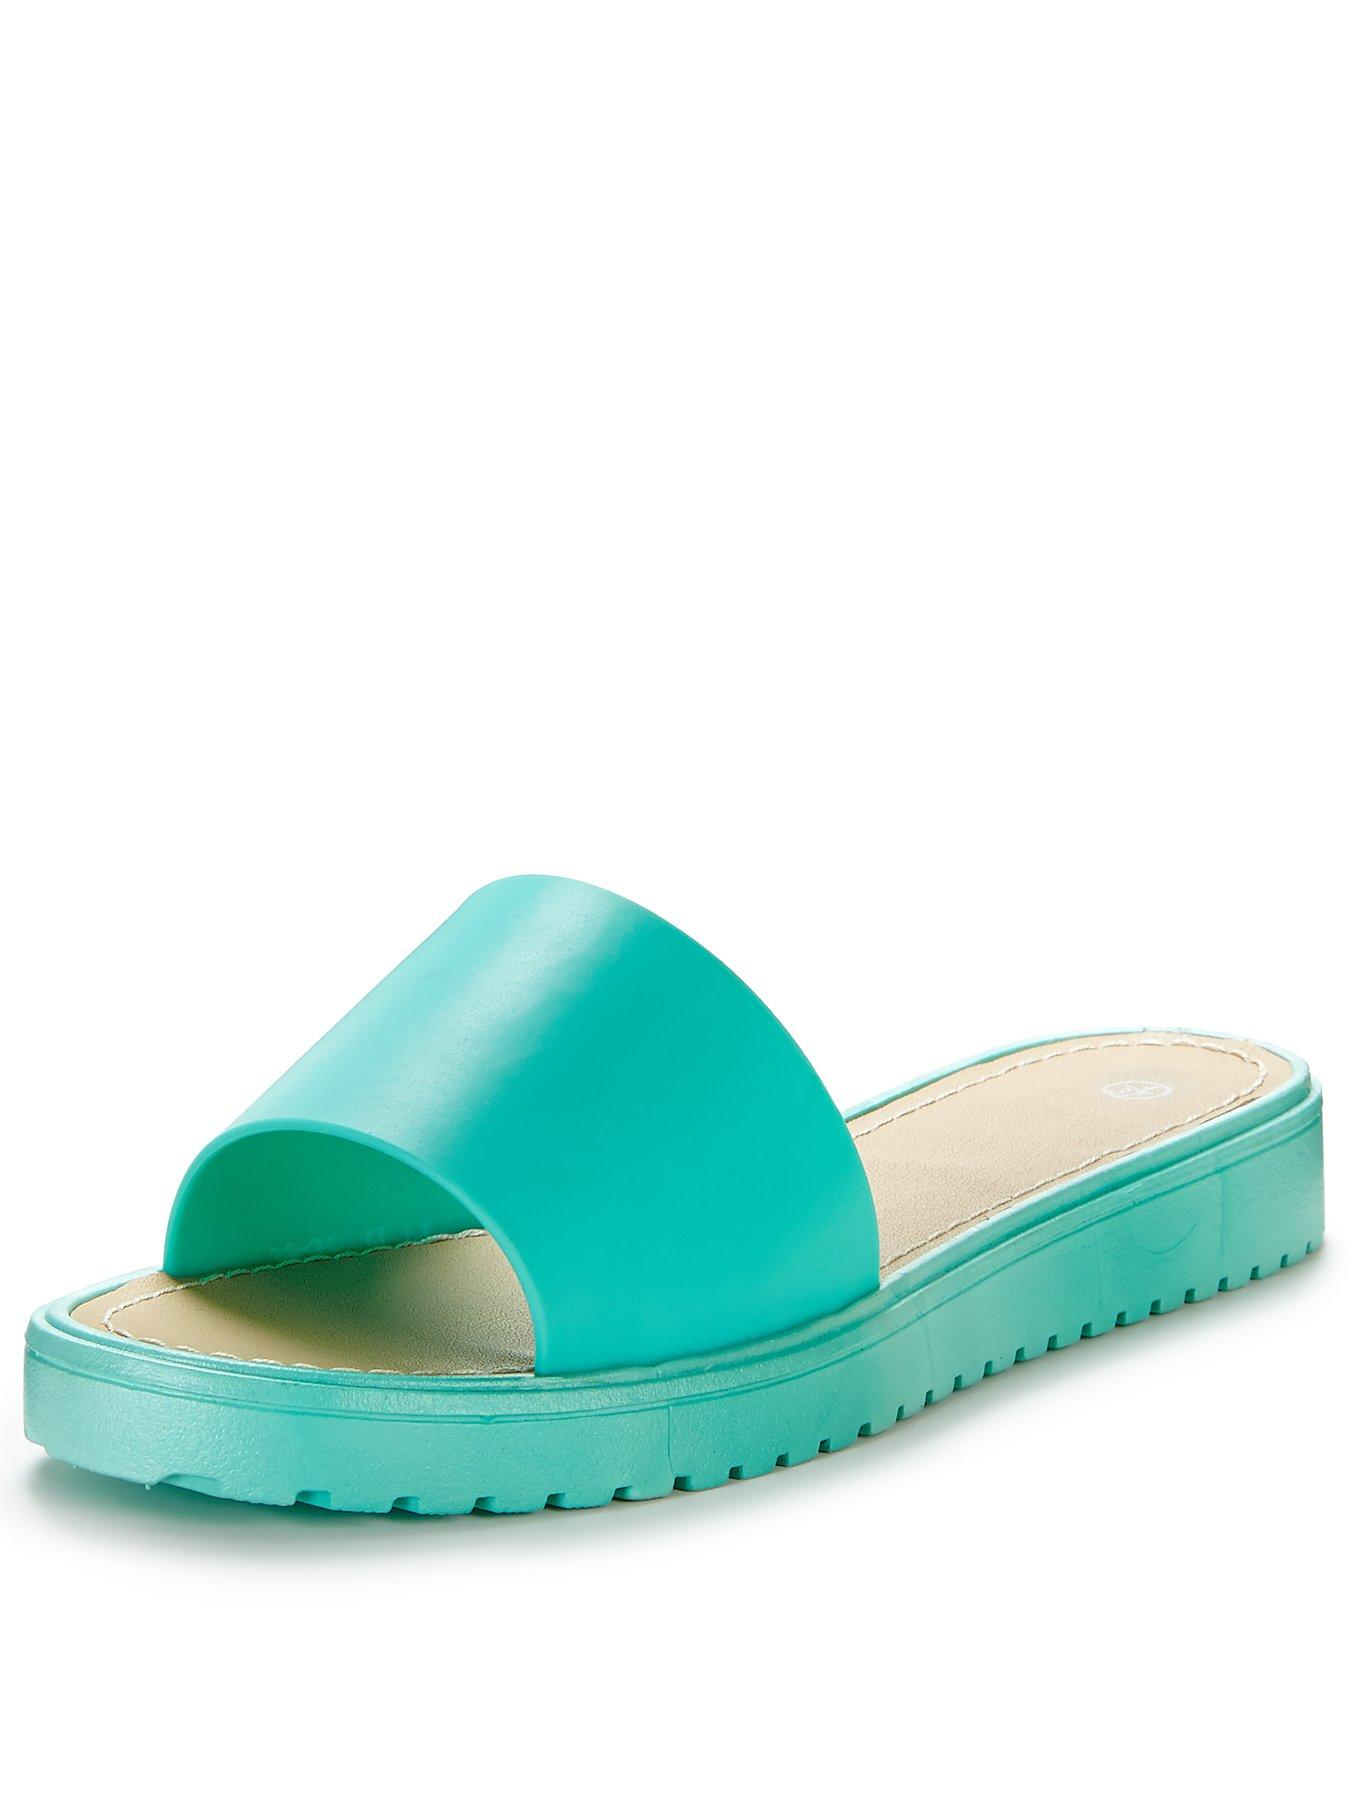 Charlie Jelly Slide Sandals